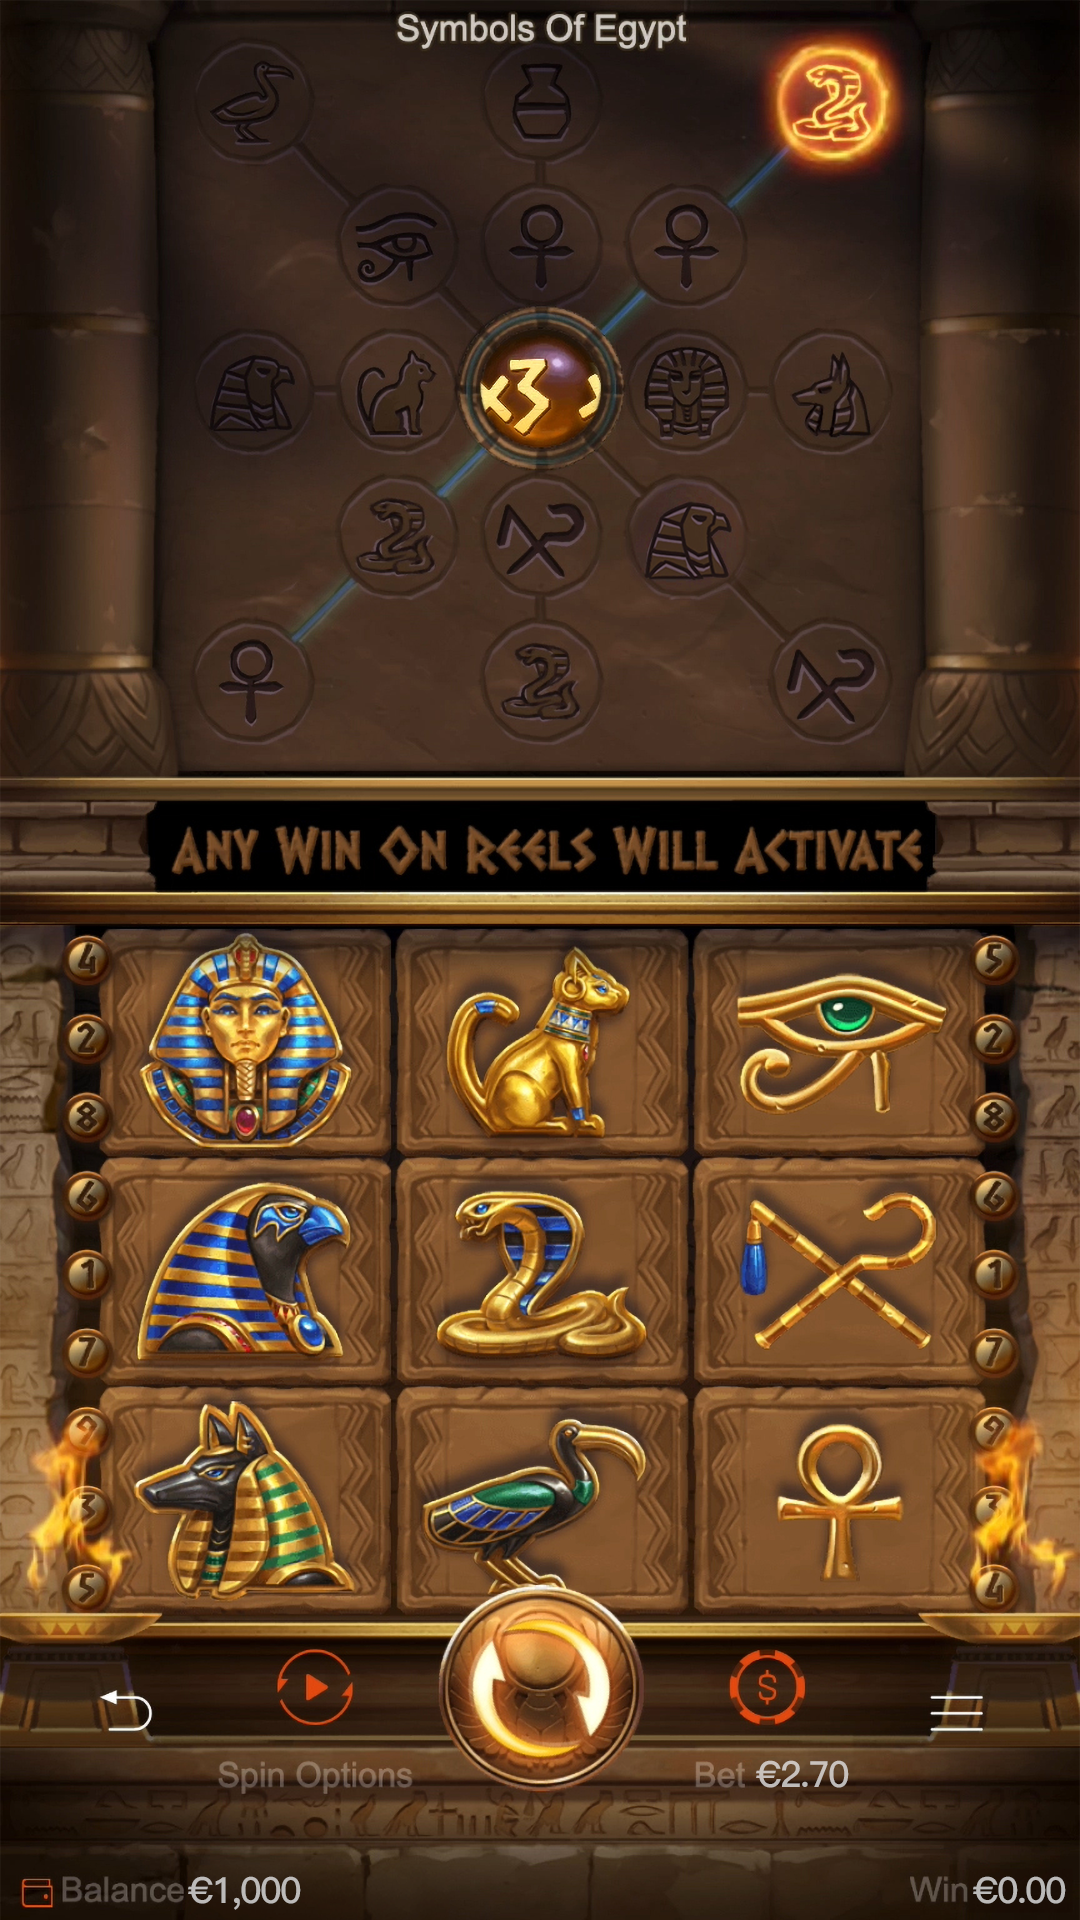 Symbols of Egypt Slot Machine Review and Play for Free